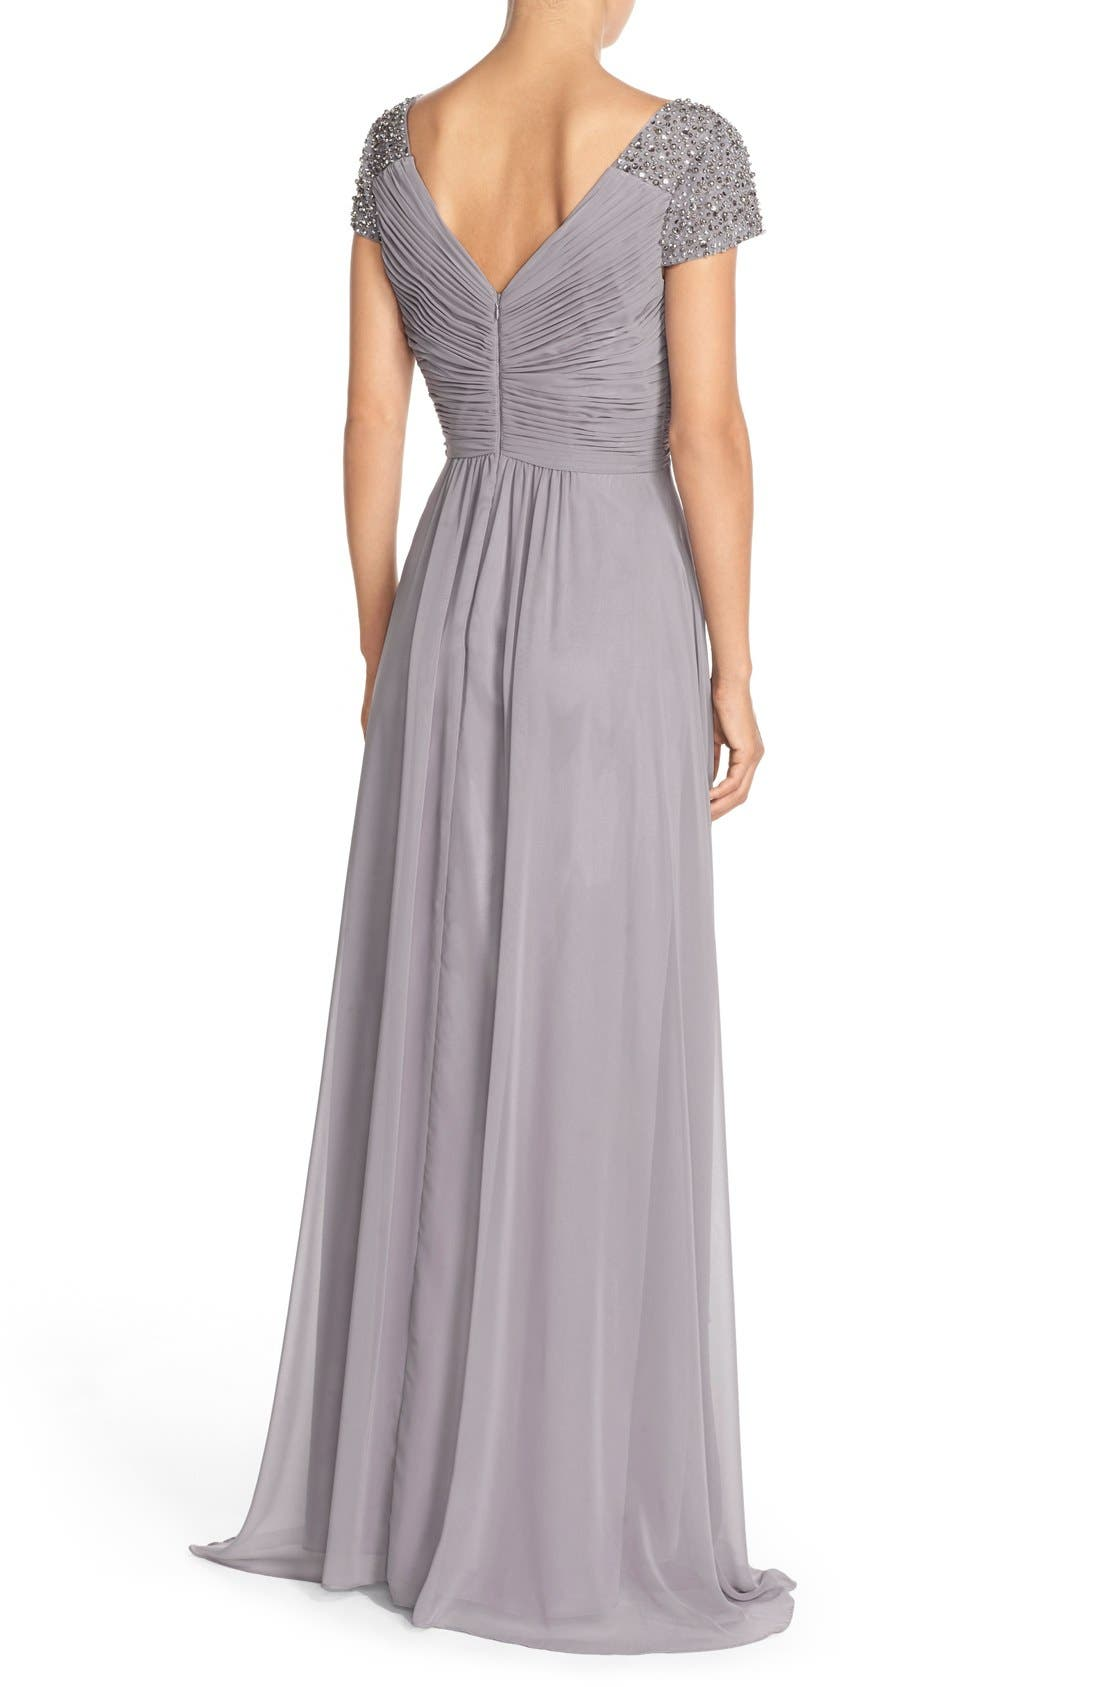 Embellished Pleated Chiffon Gown,                             Alternate thumbnail 8, color,                             030